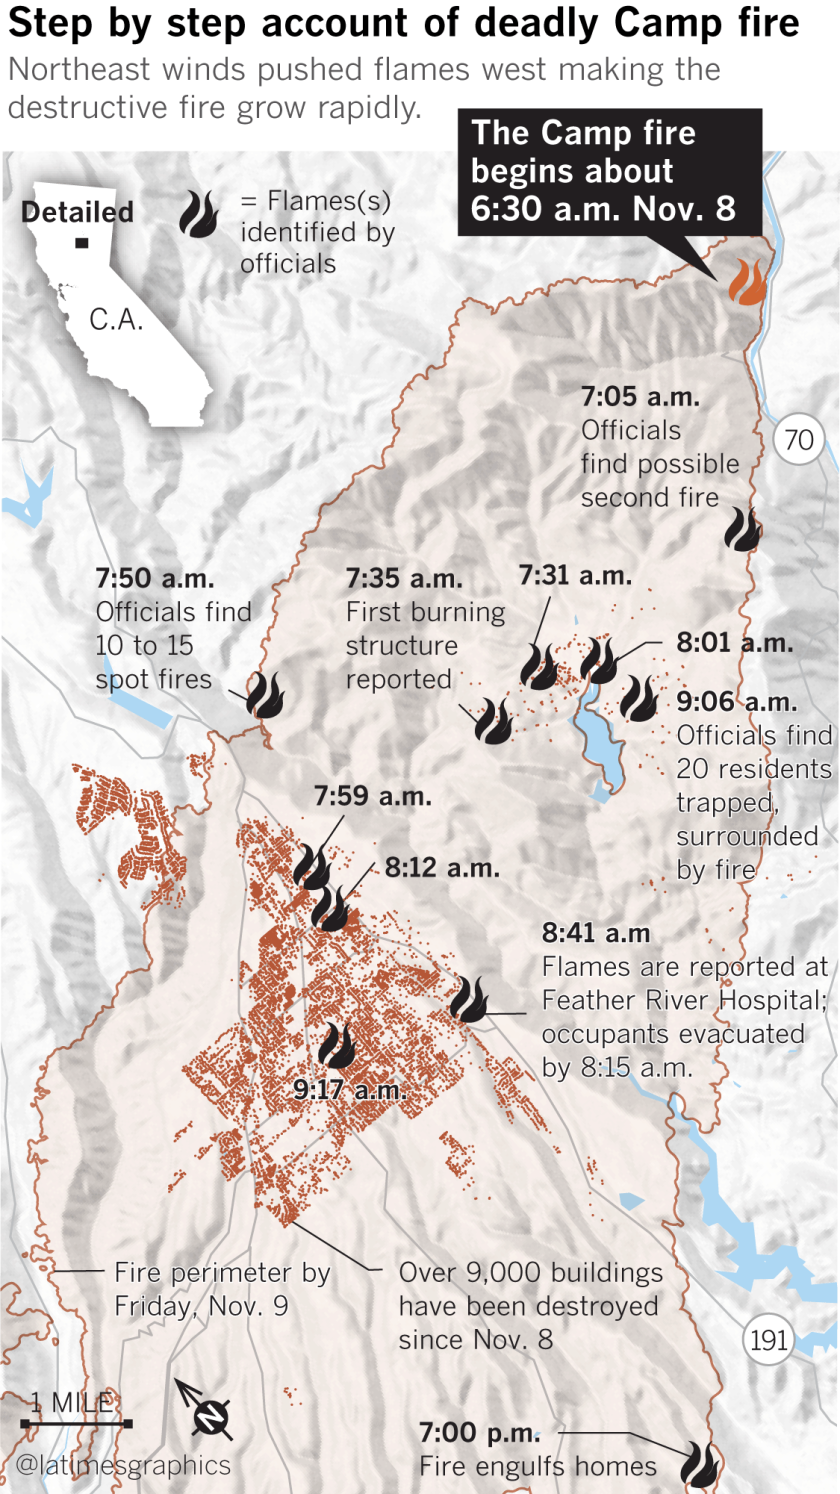 Northeast winds pushed Camp fire flames west making the destructive fire grow rapidly.